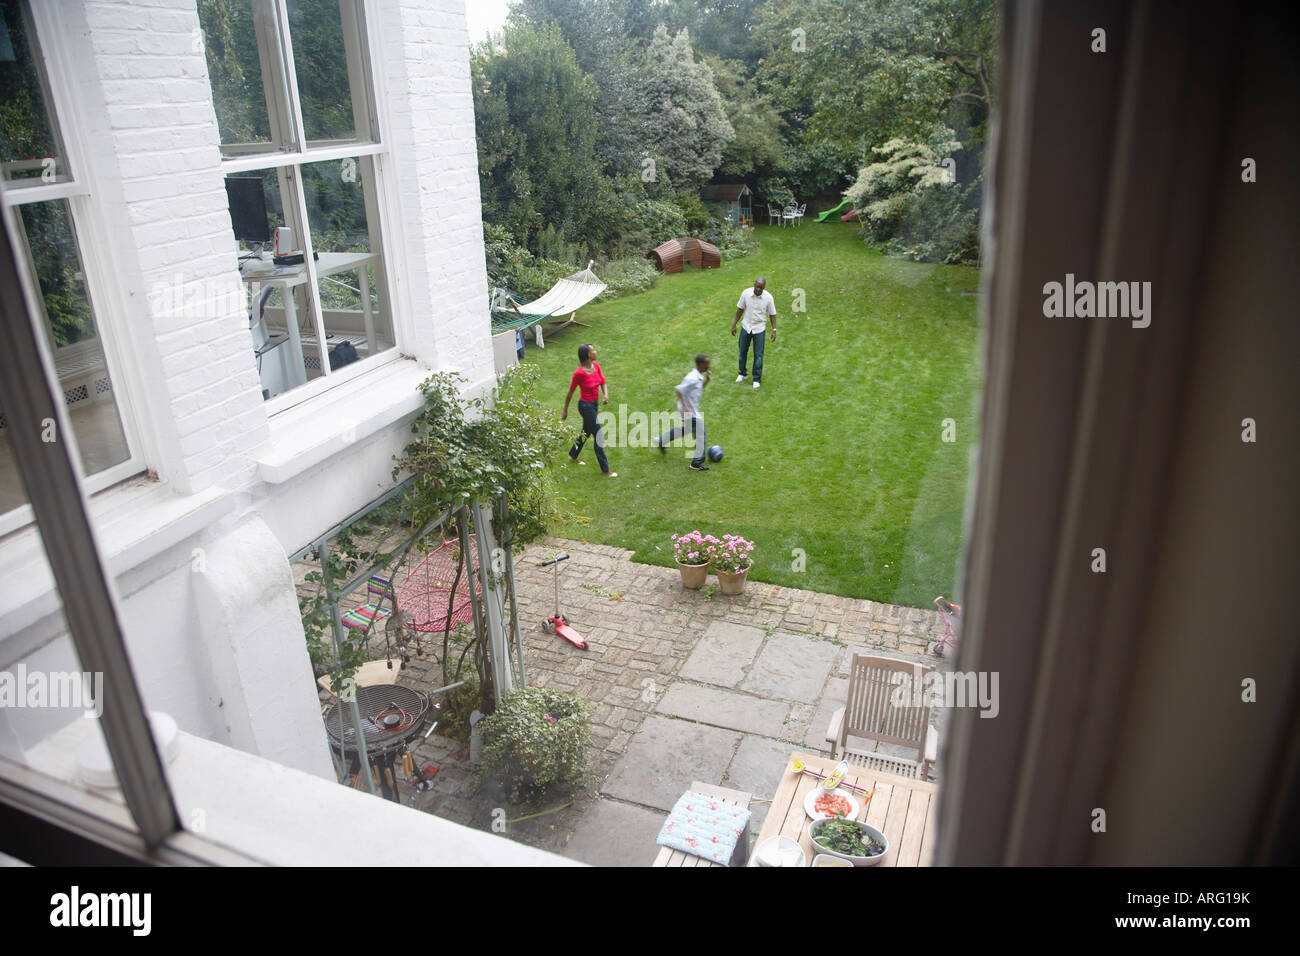 Family Playing in Backyard Stock Photo